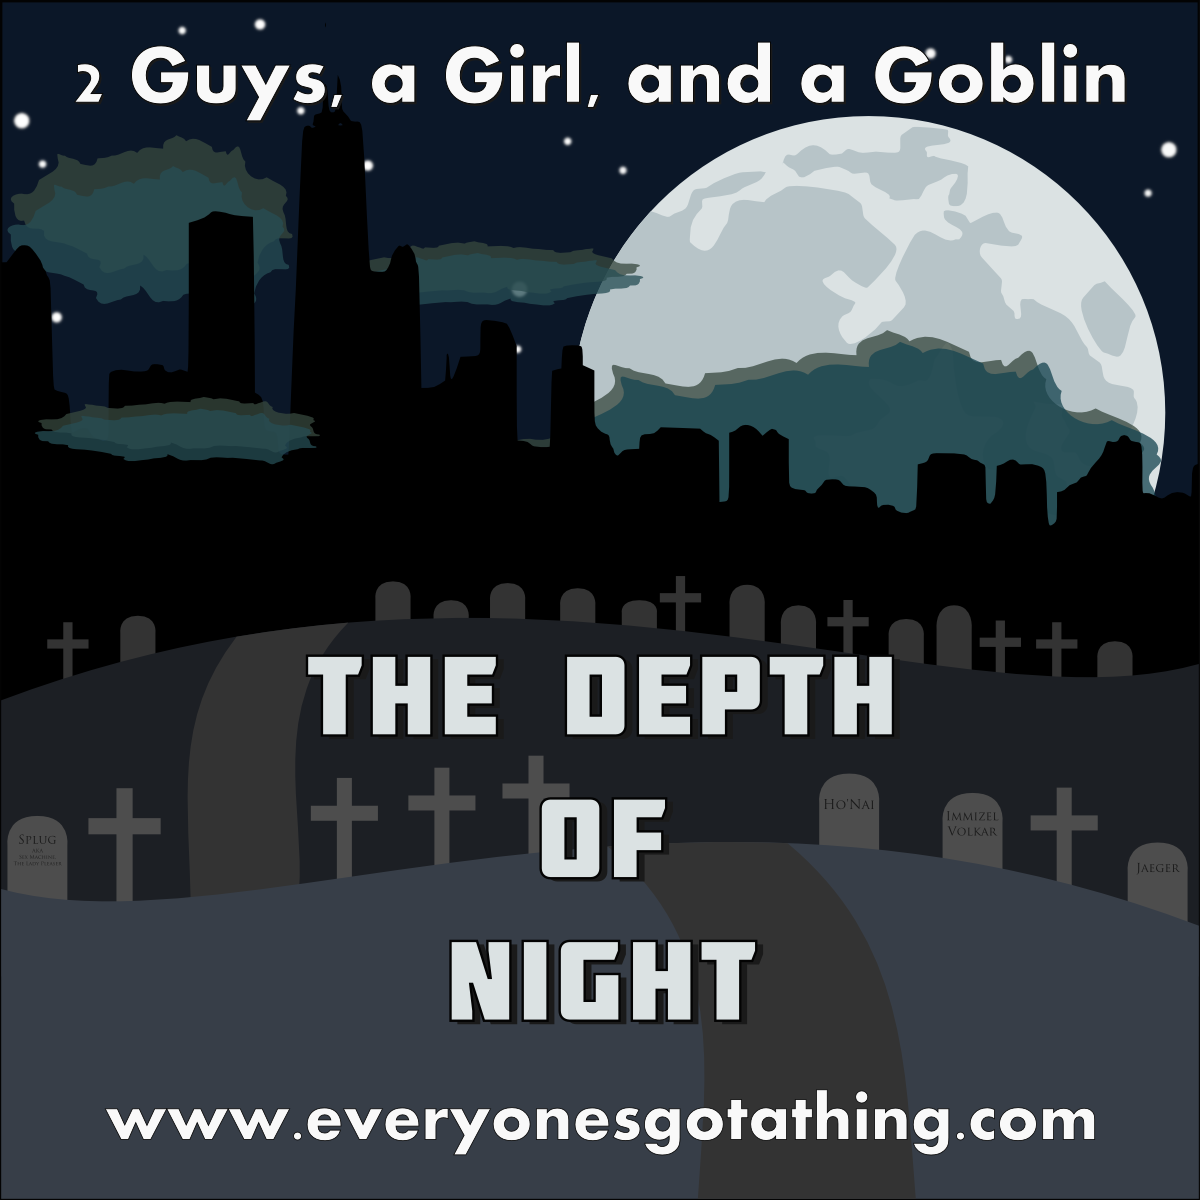 2 Guys, a Girl, and a Goblin – Everyone's Got a Thing